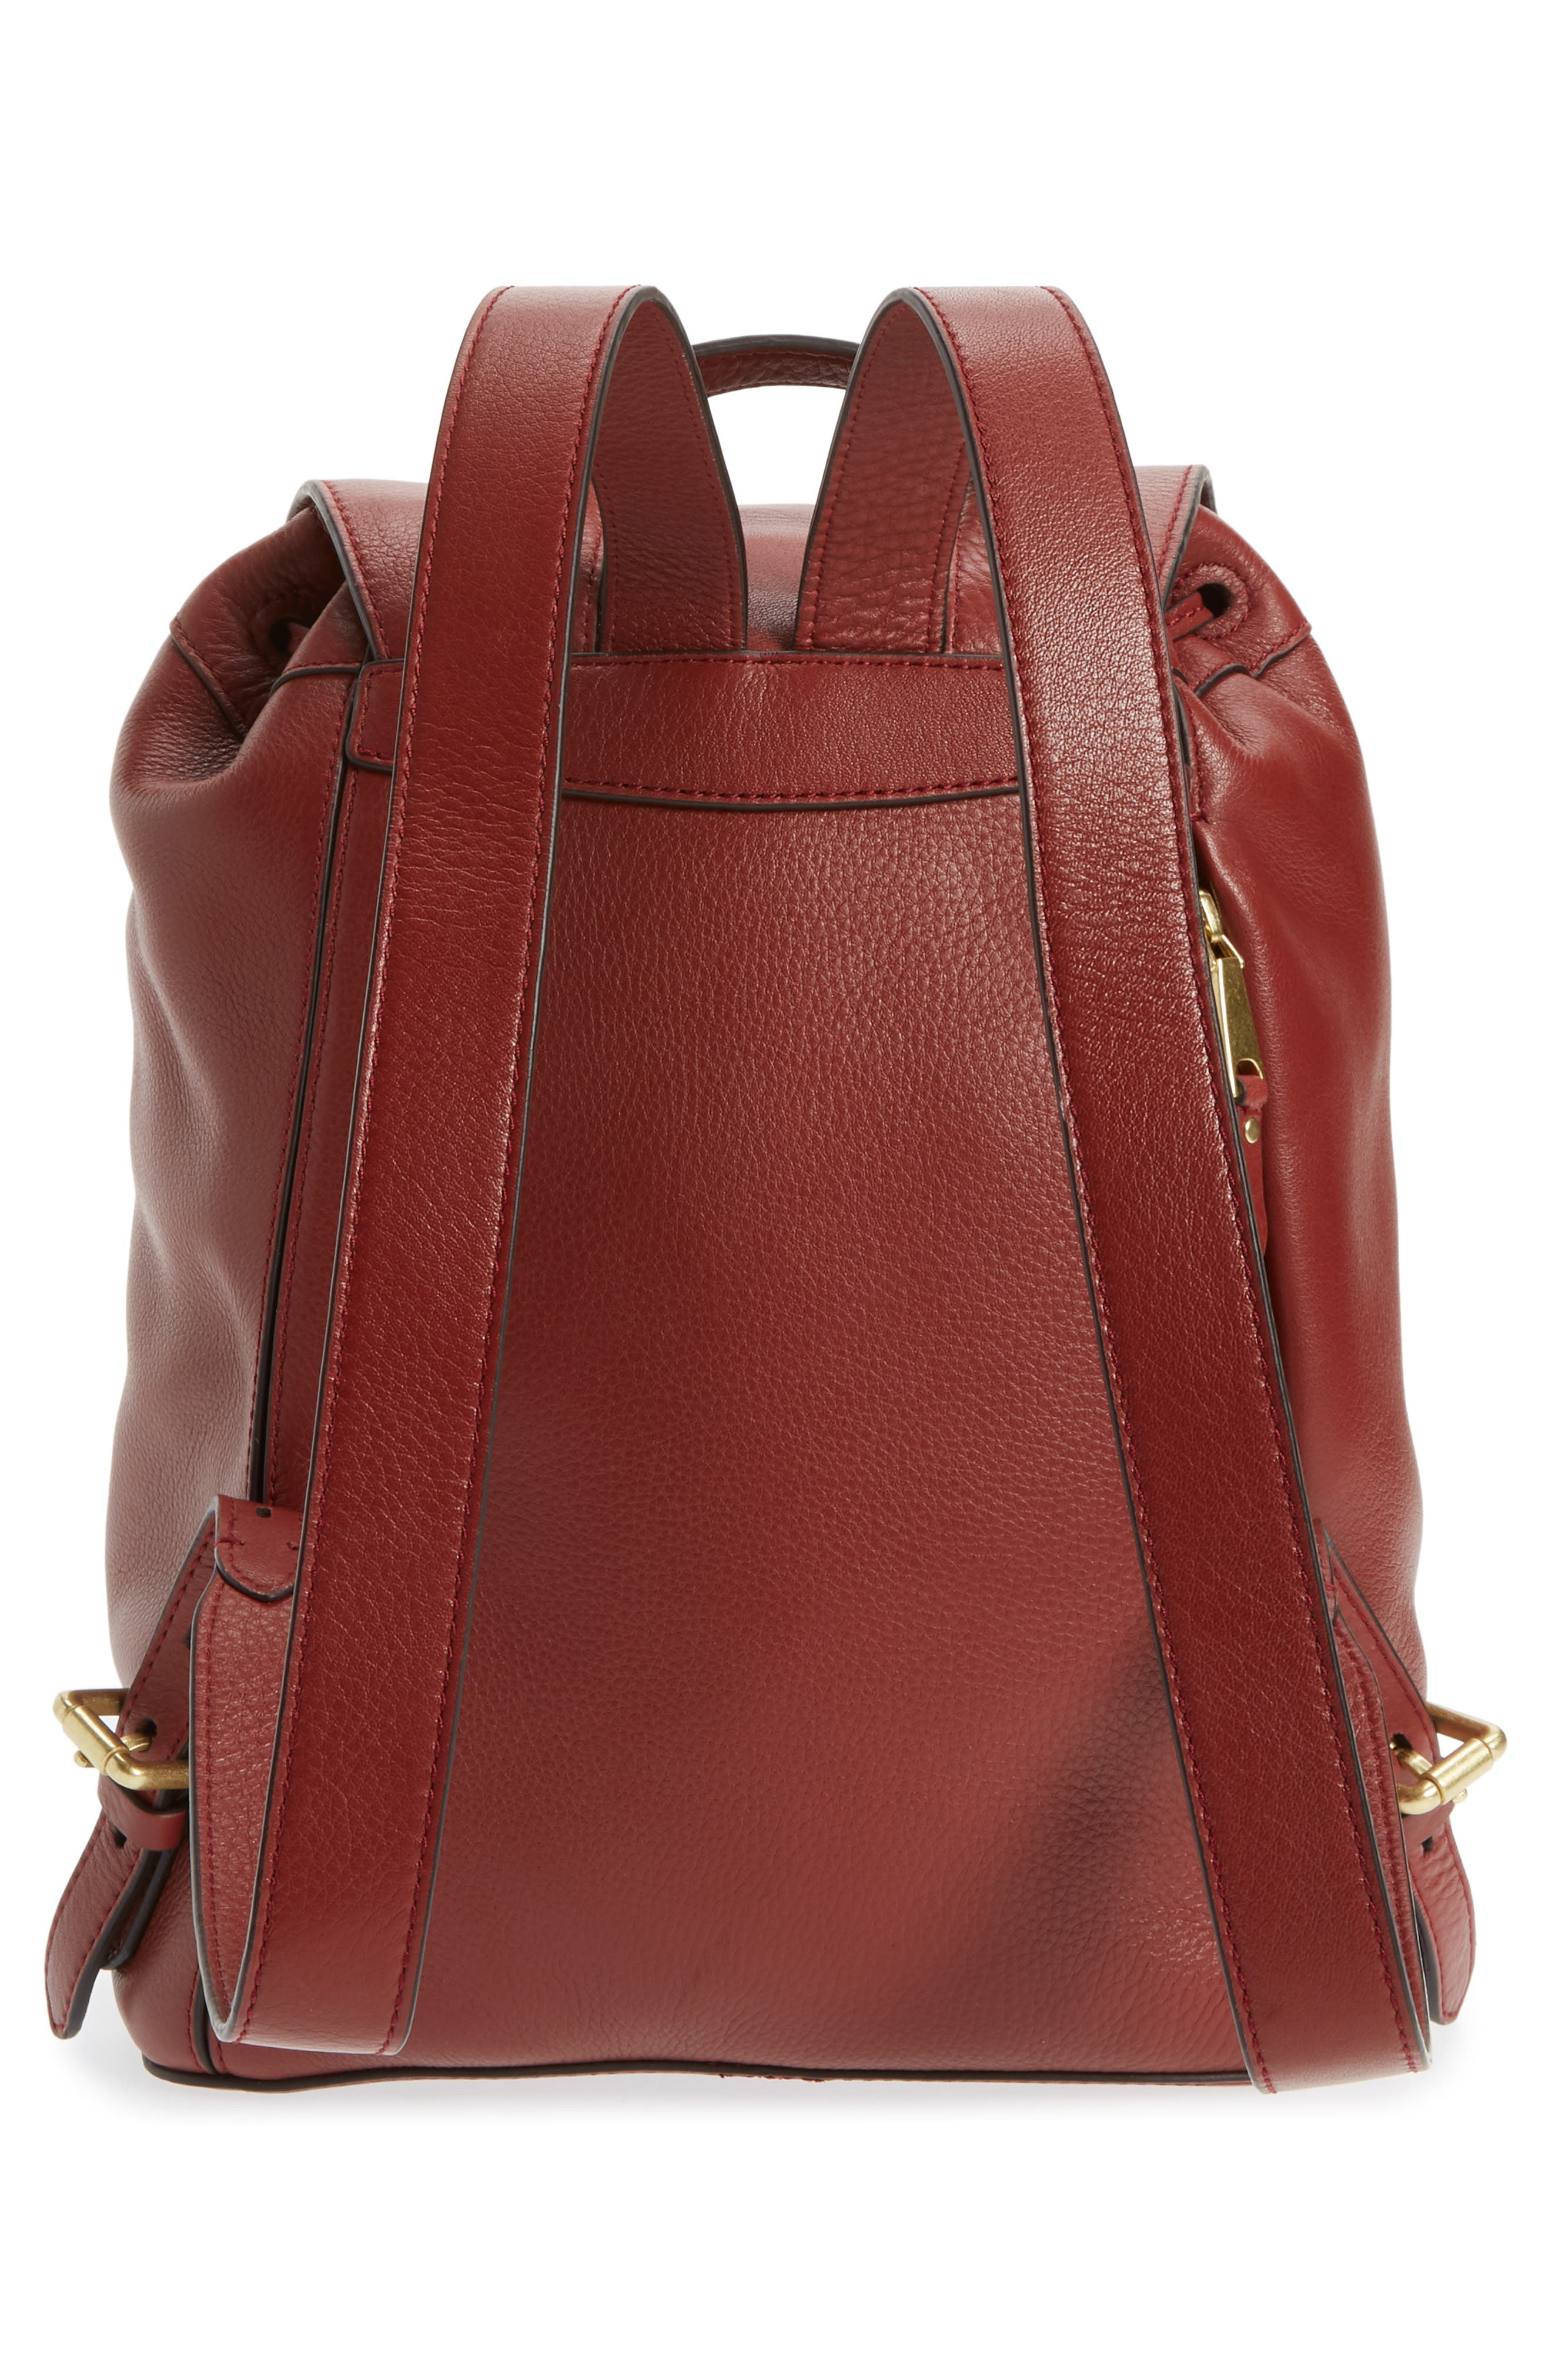 Cassidy RFID Pebbled Leather Backpack,                             Alternate thumbnail 10, color,